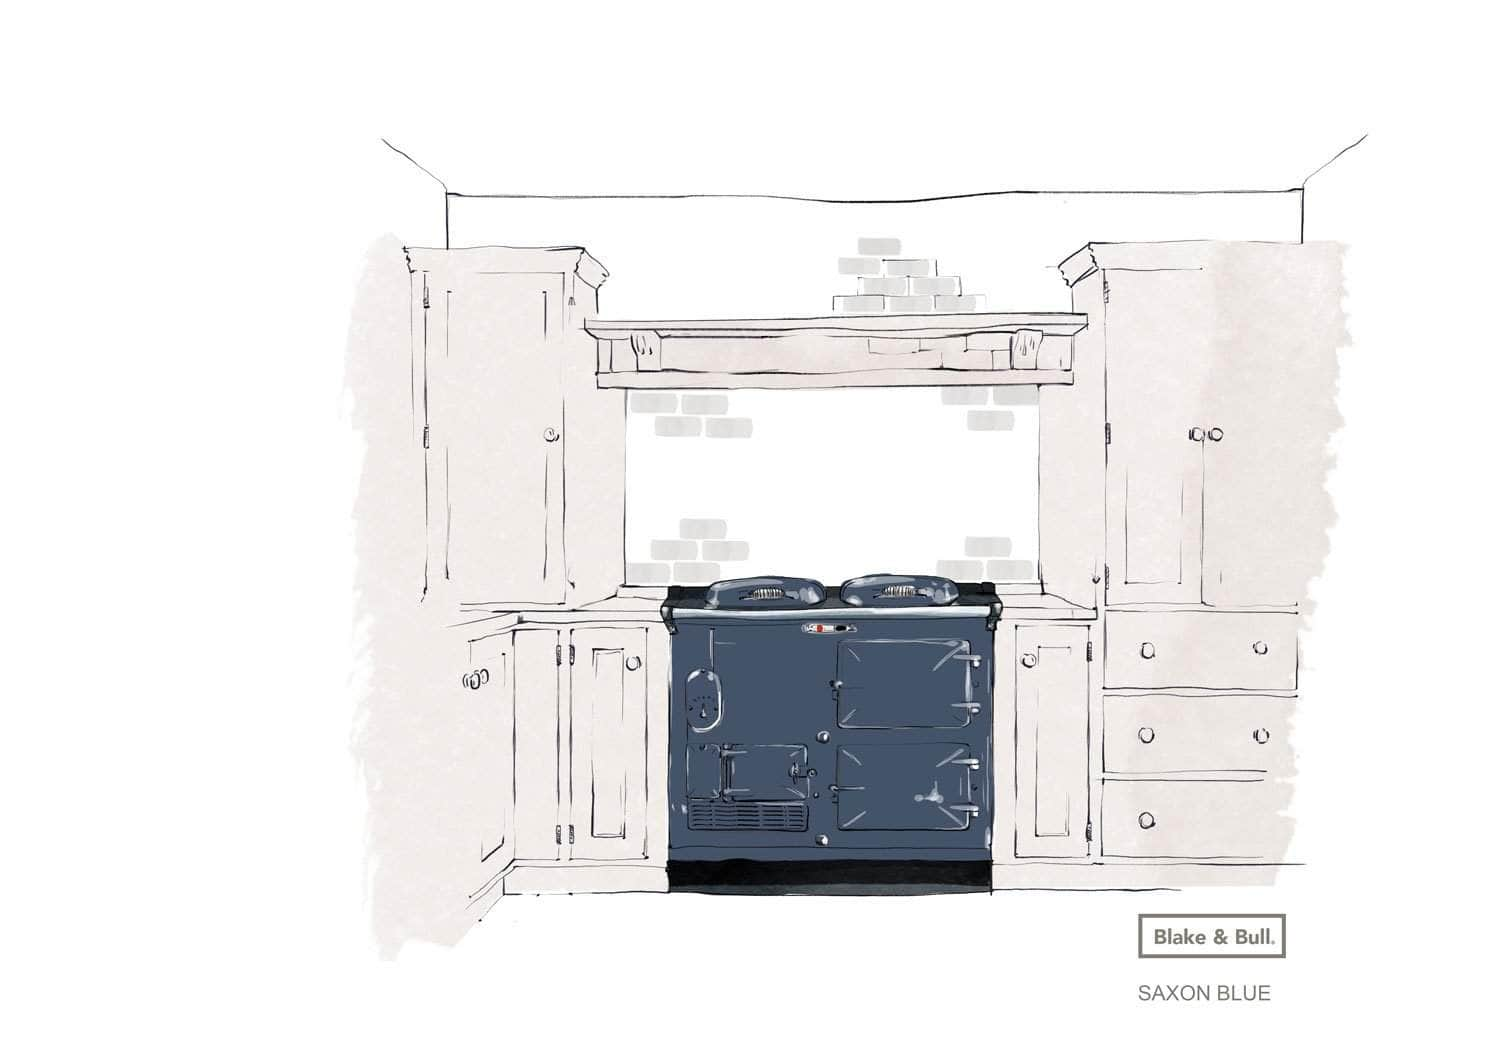 Reconditioned Aga range cooker 'Standard' model 2 oven | 'eCook' by Blake & Bull | £7873 Saxon Blue / Pay in full and save £300. Use code 'SAVE300S' at checkout